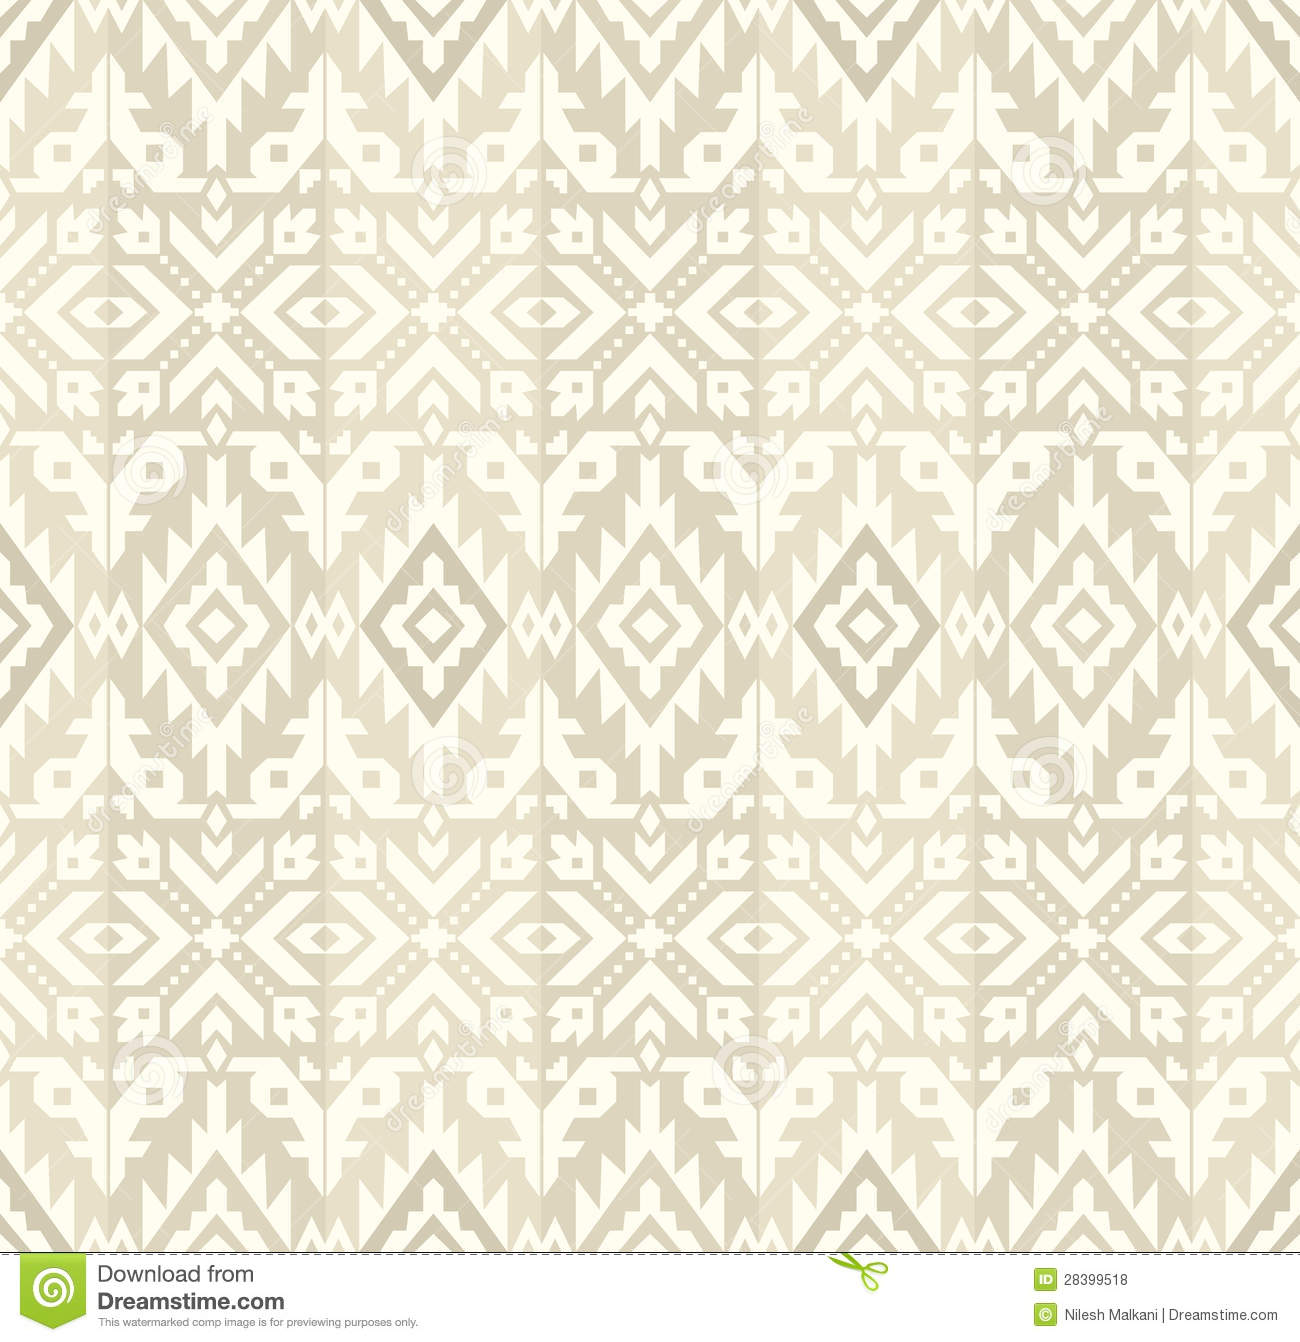 Bed sheets texture seamless - Seamless Background For Bed Sheet